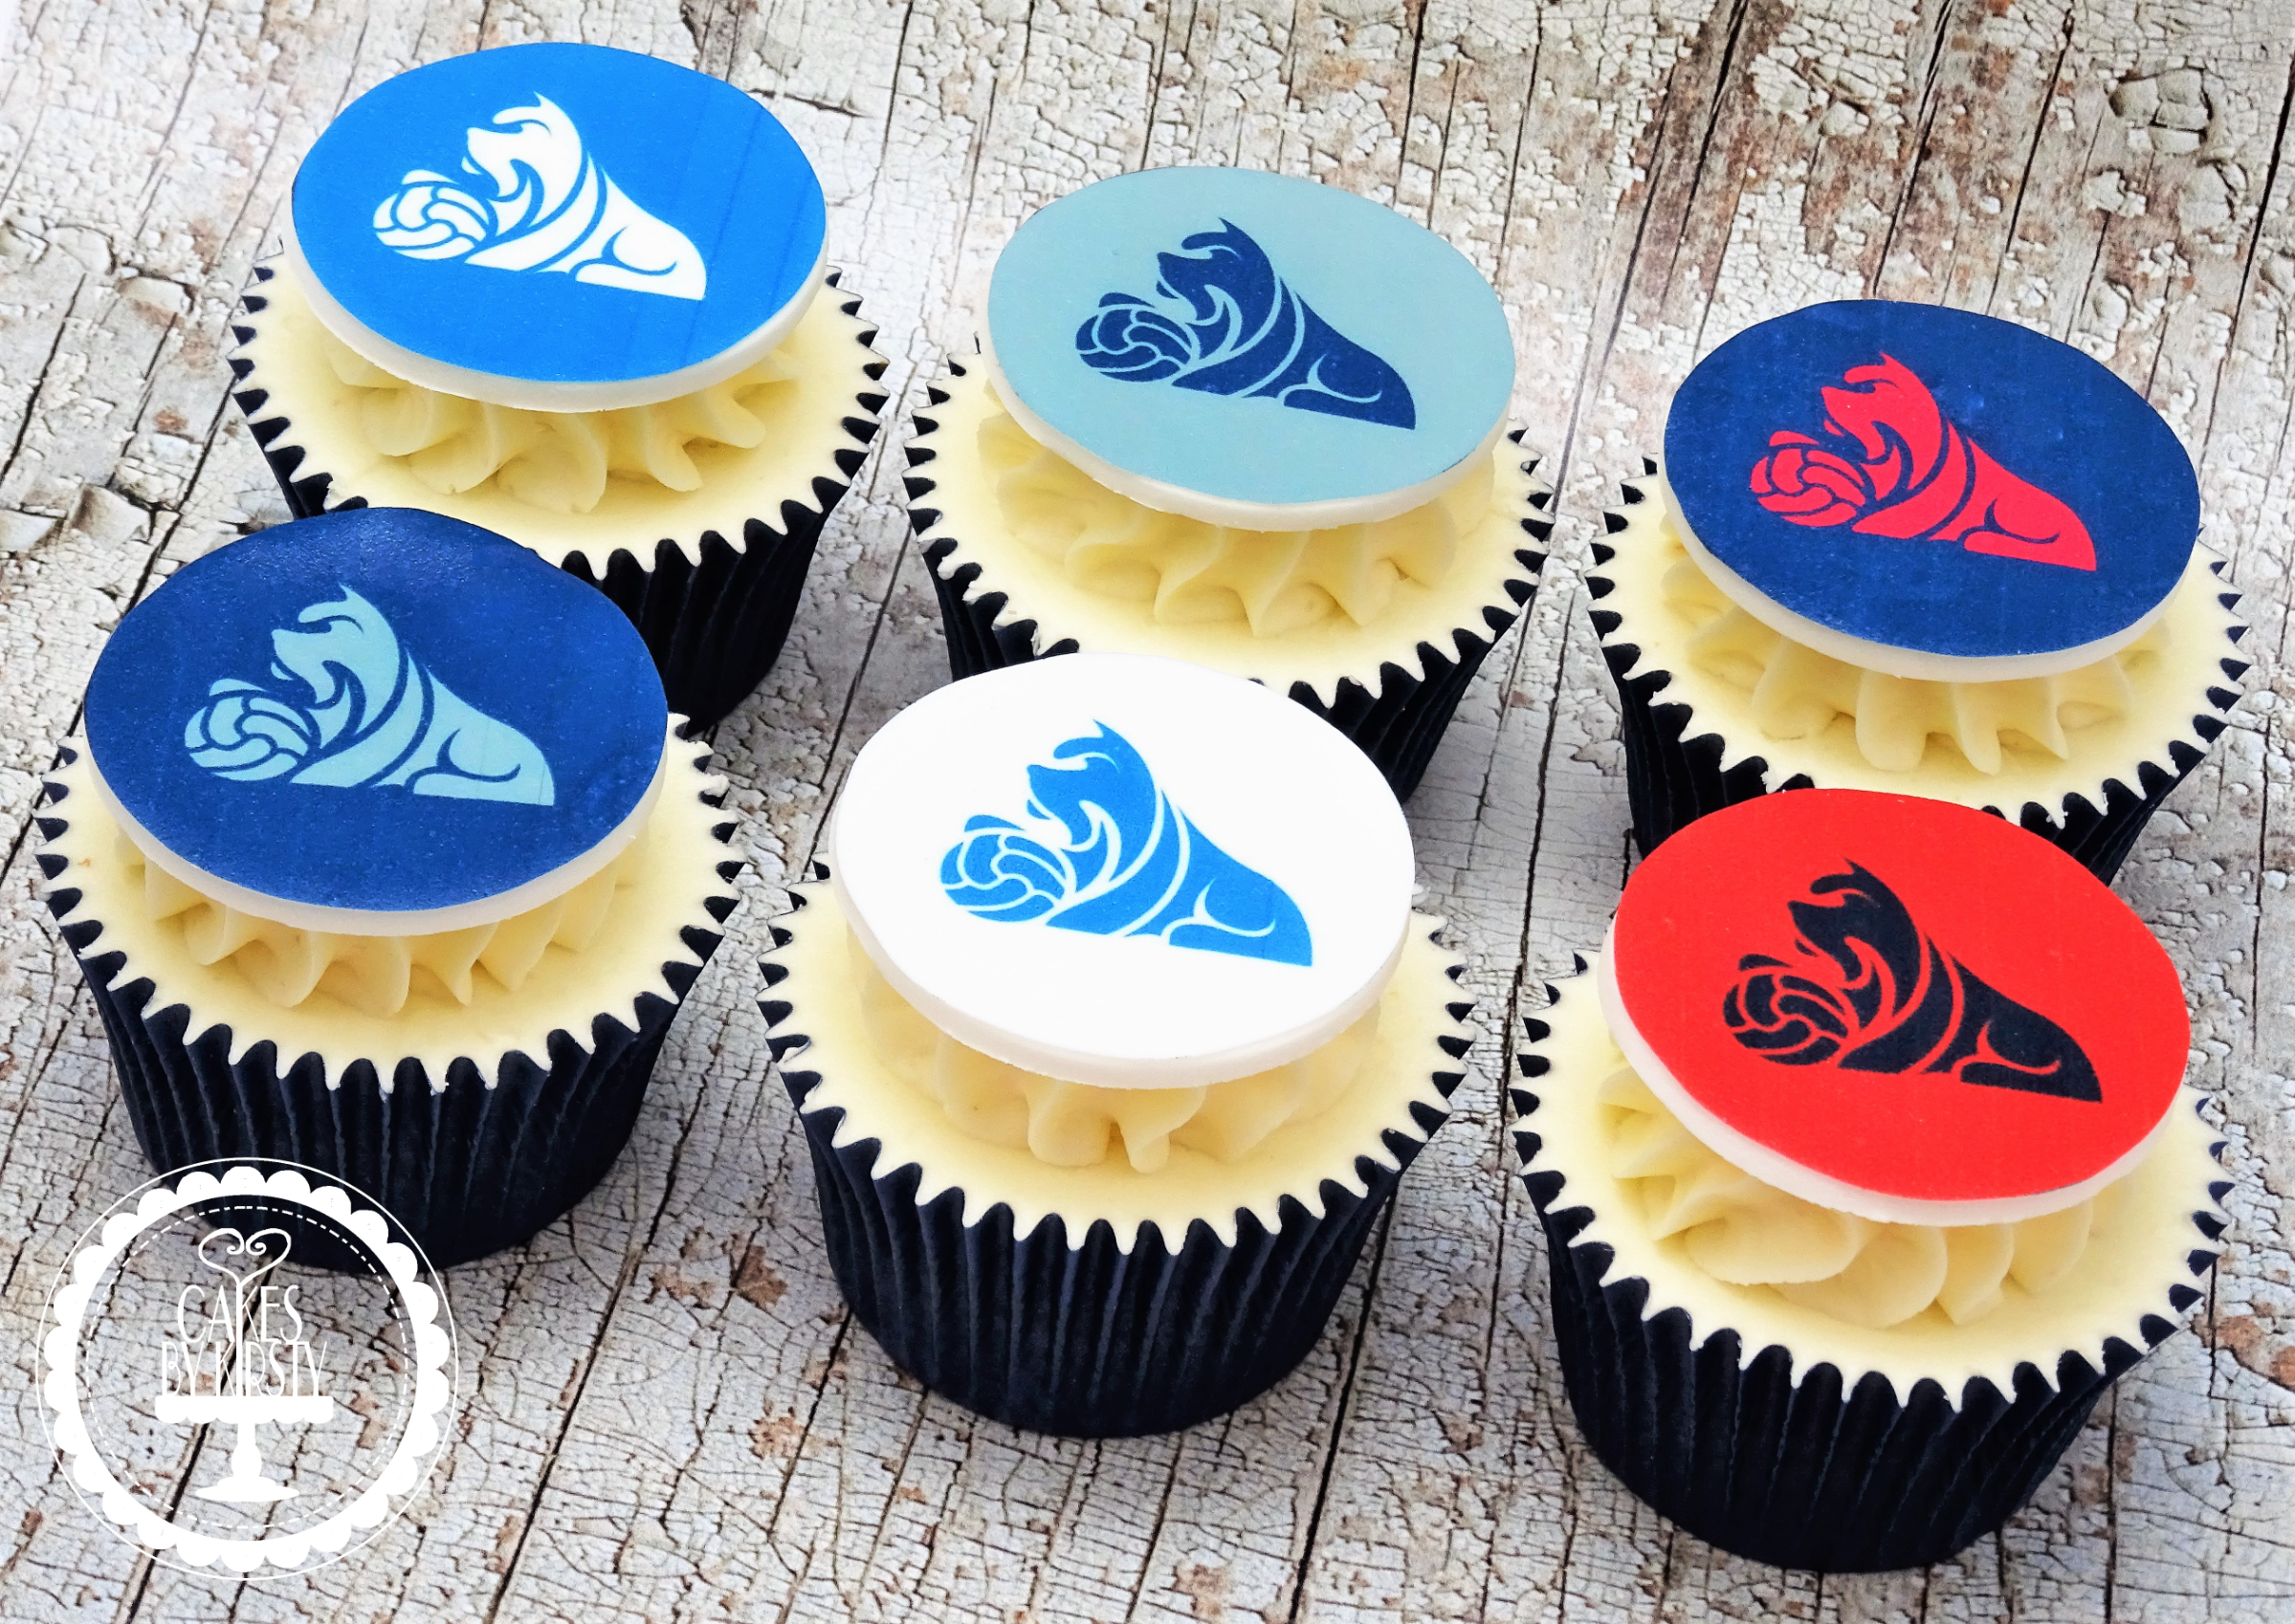 Huddersfield Town Cupcakes